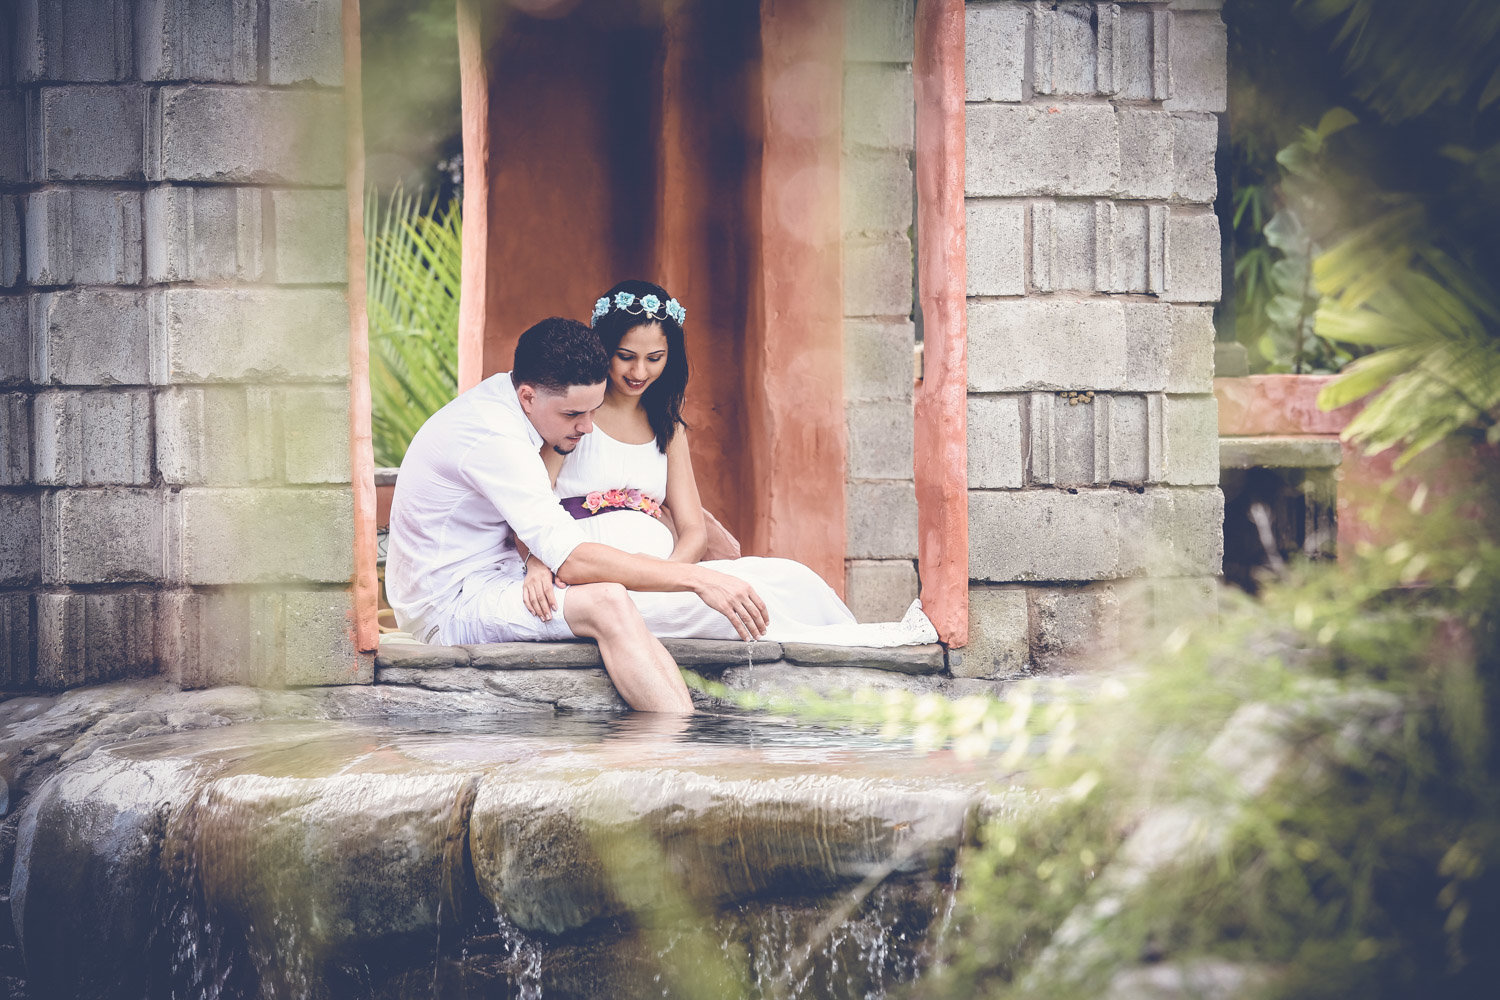 Pregnant couple sit together in idyllic setting. Photo by Ross Photography, Trinidad, W.I..